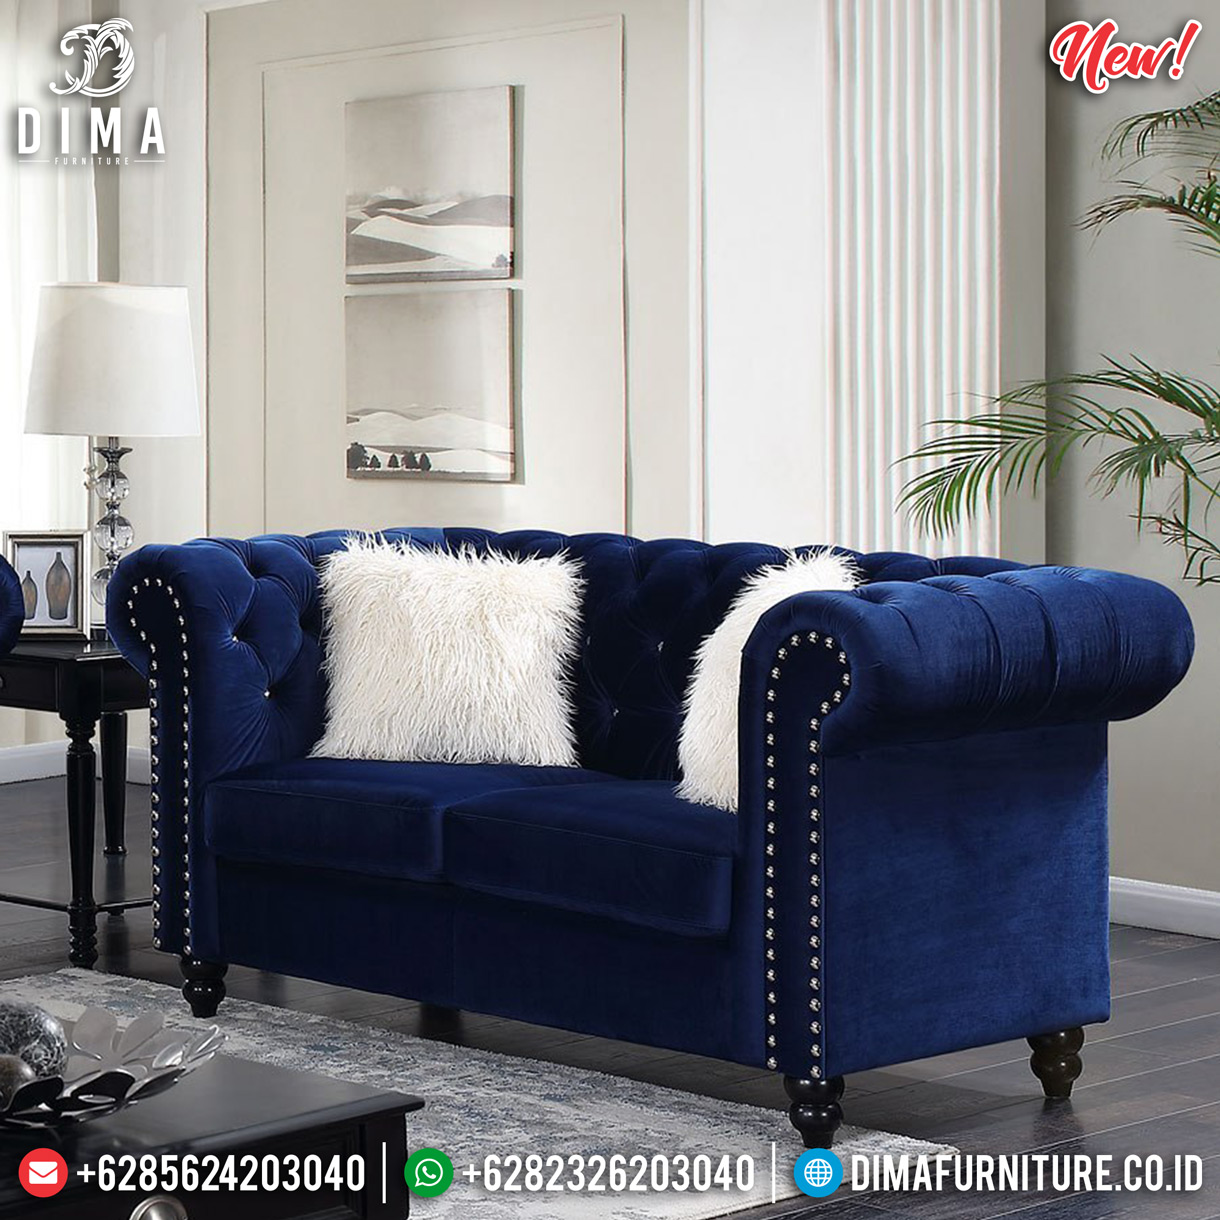 Sofa Tamu Minimalis Chesterfield Blue Navy Best Produk Furniture Jepara TTJ-0895